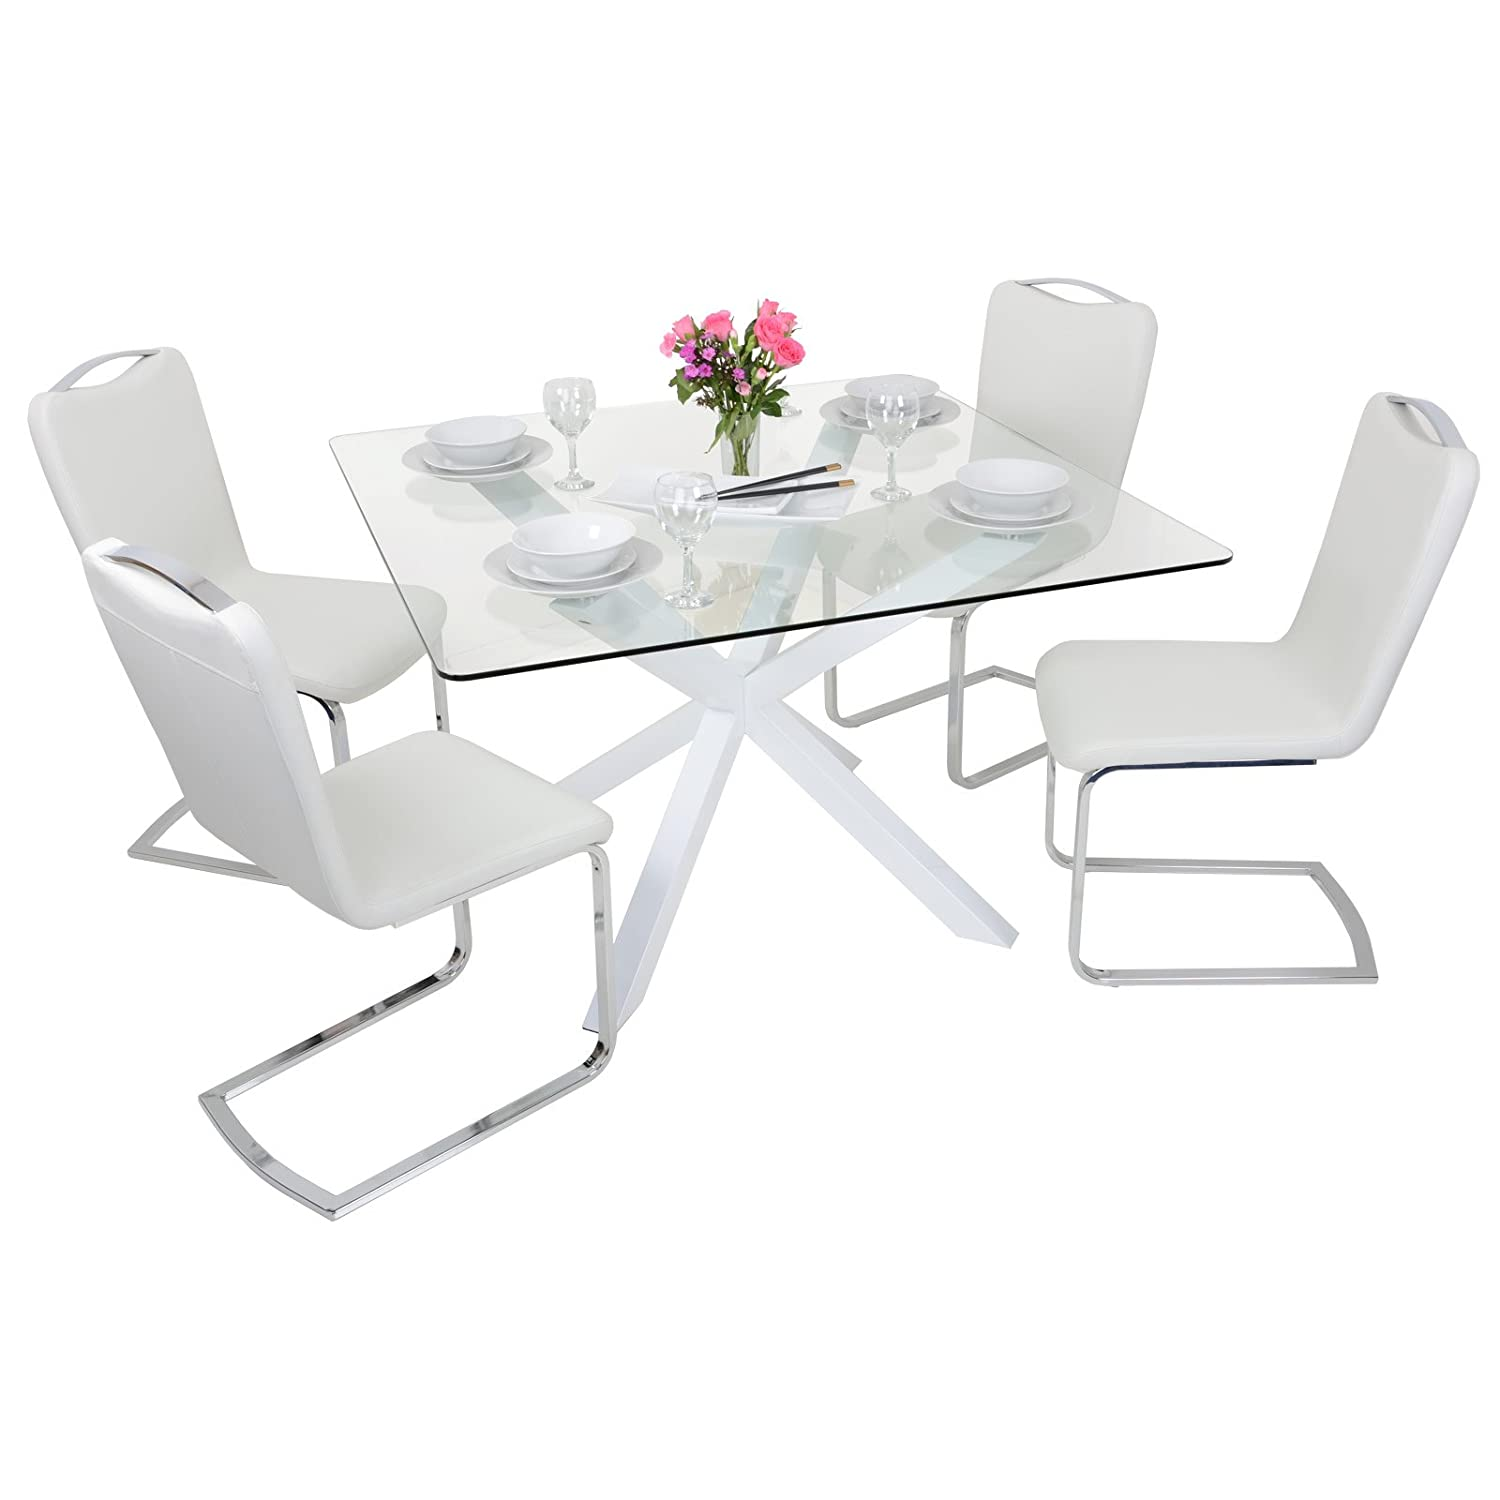 modern square clear glass top dining table set with  white faux  - modern square clear glass top dining table set with  white faux leatherchairs amazoncouk kitchen  home